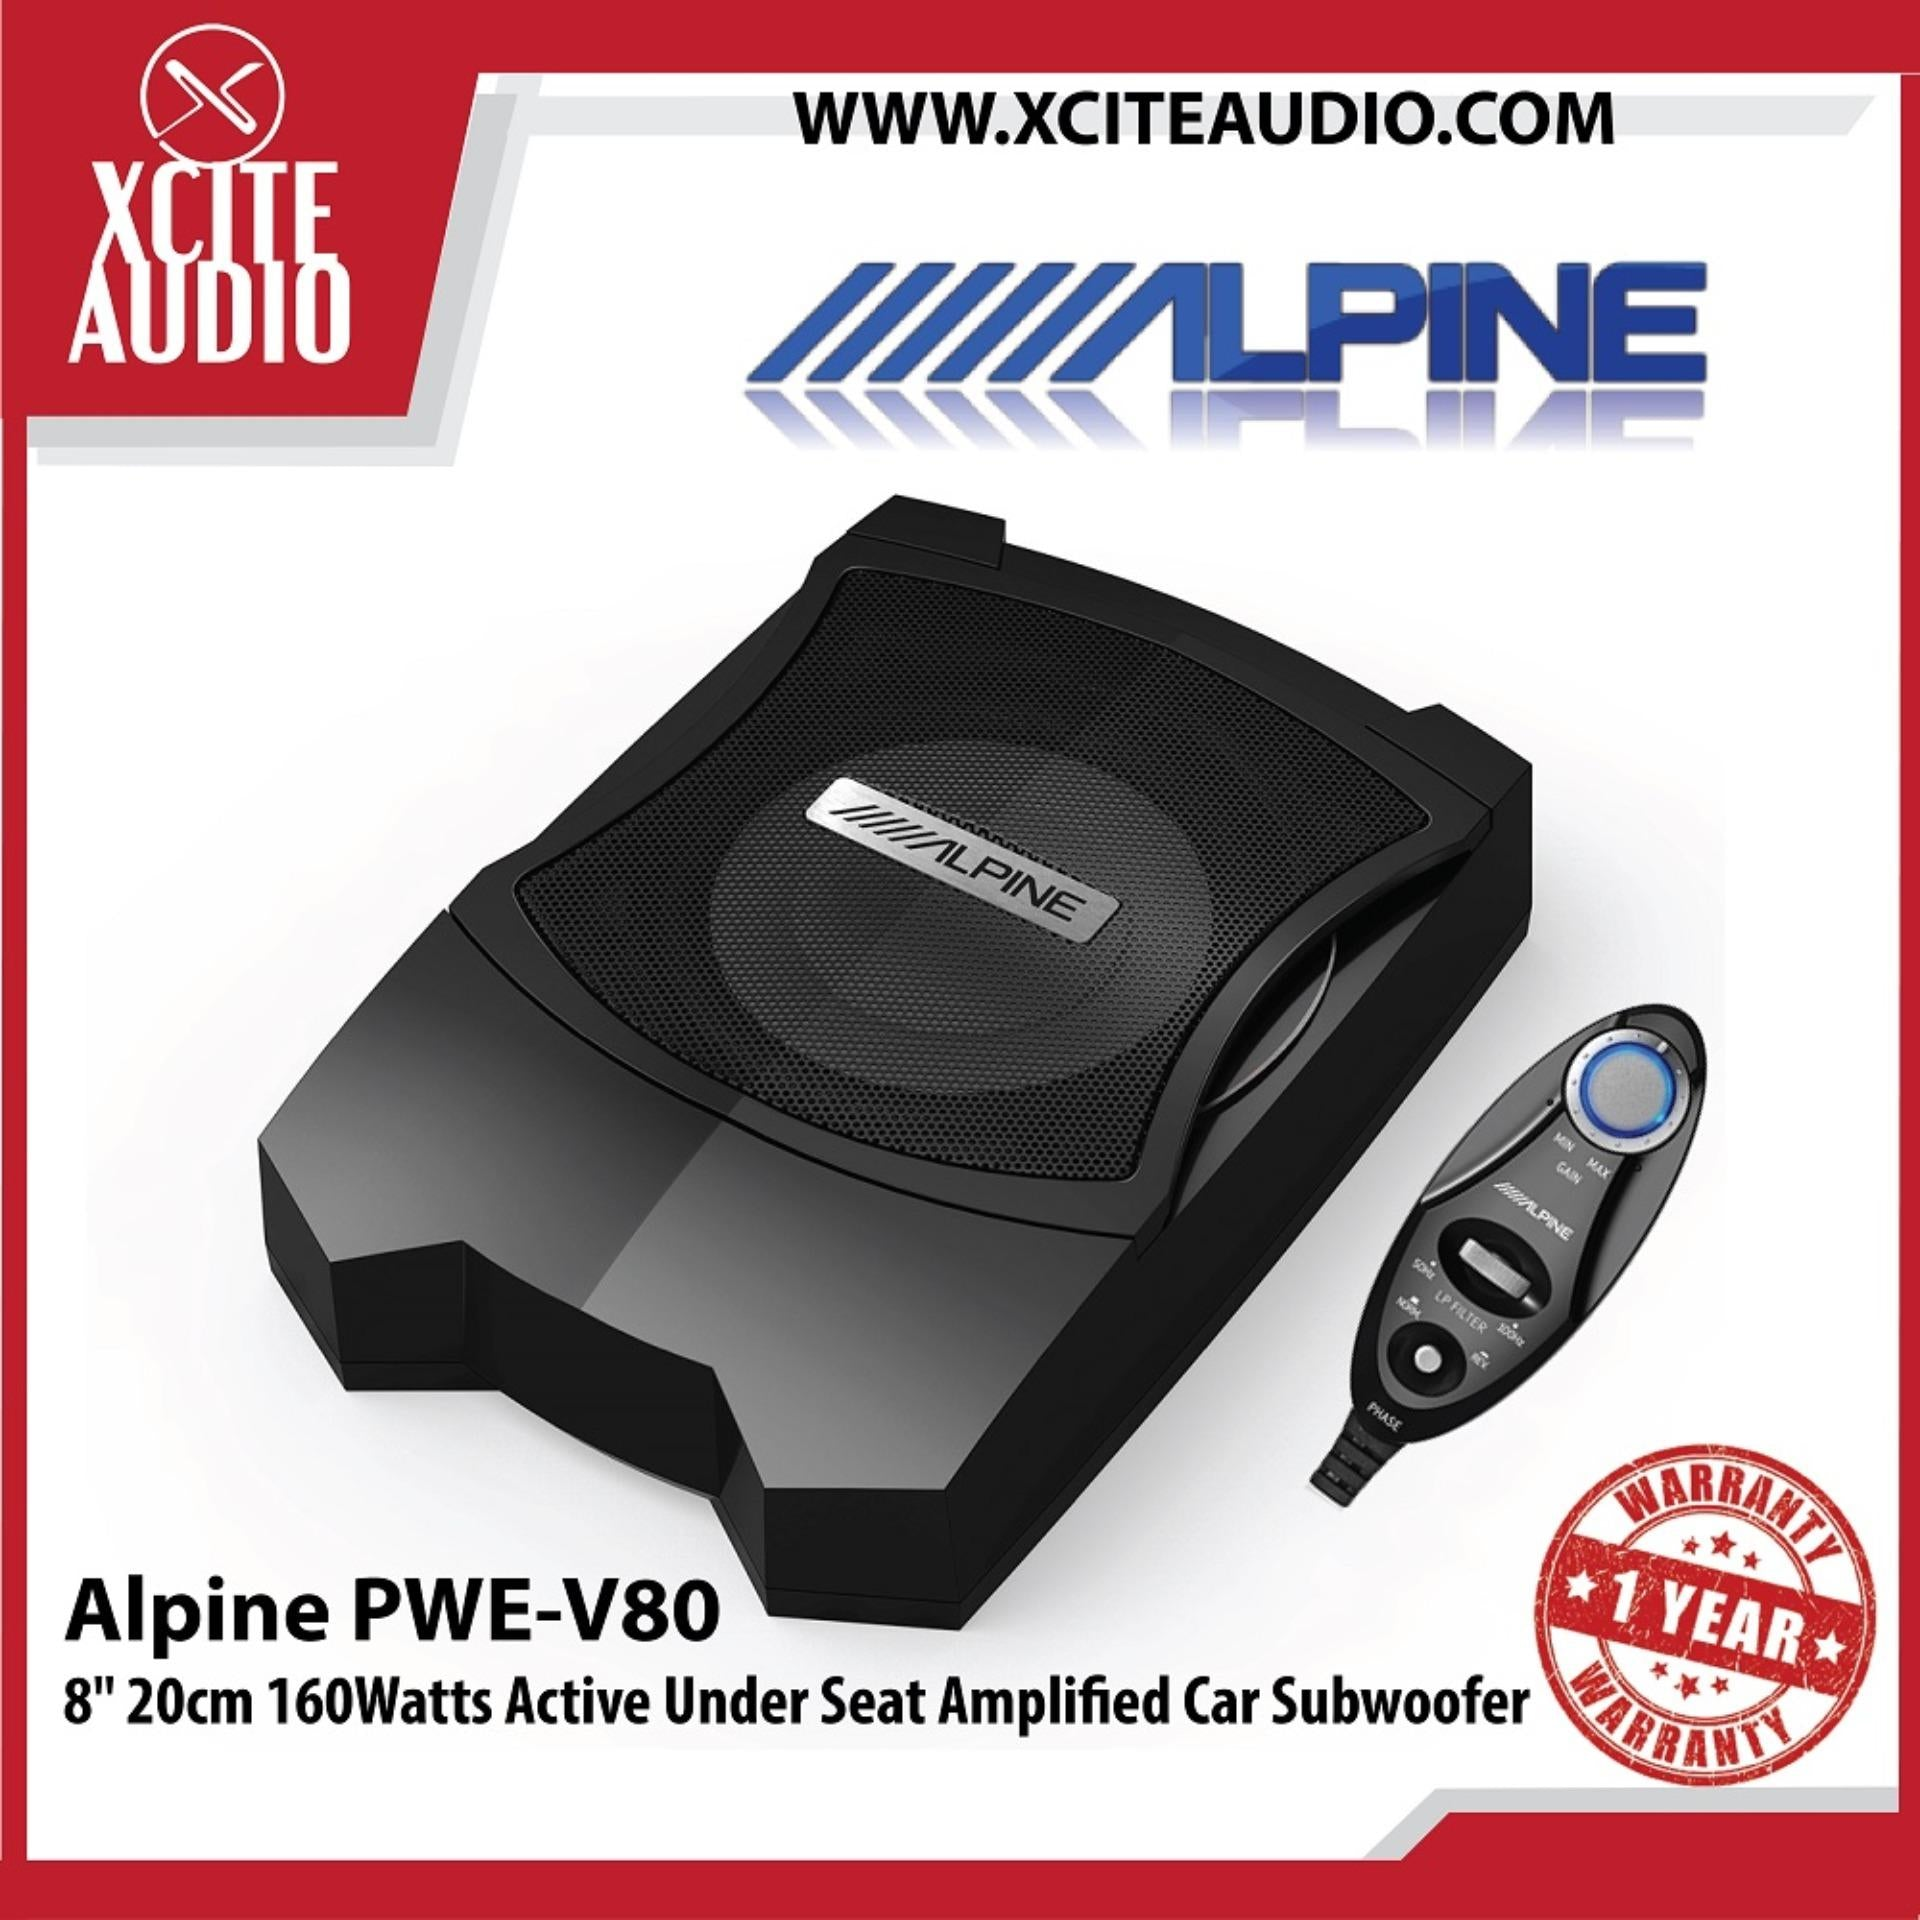 "Alpine PWE-V80 8"" 20cm 160 Watts Active Car Underseat Subwoofer"